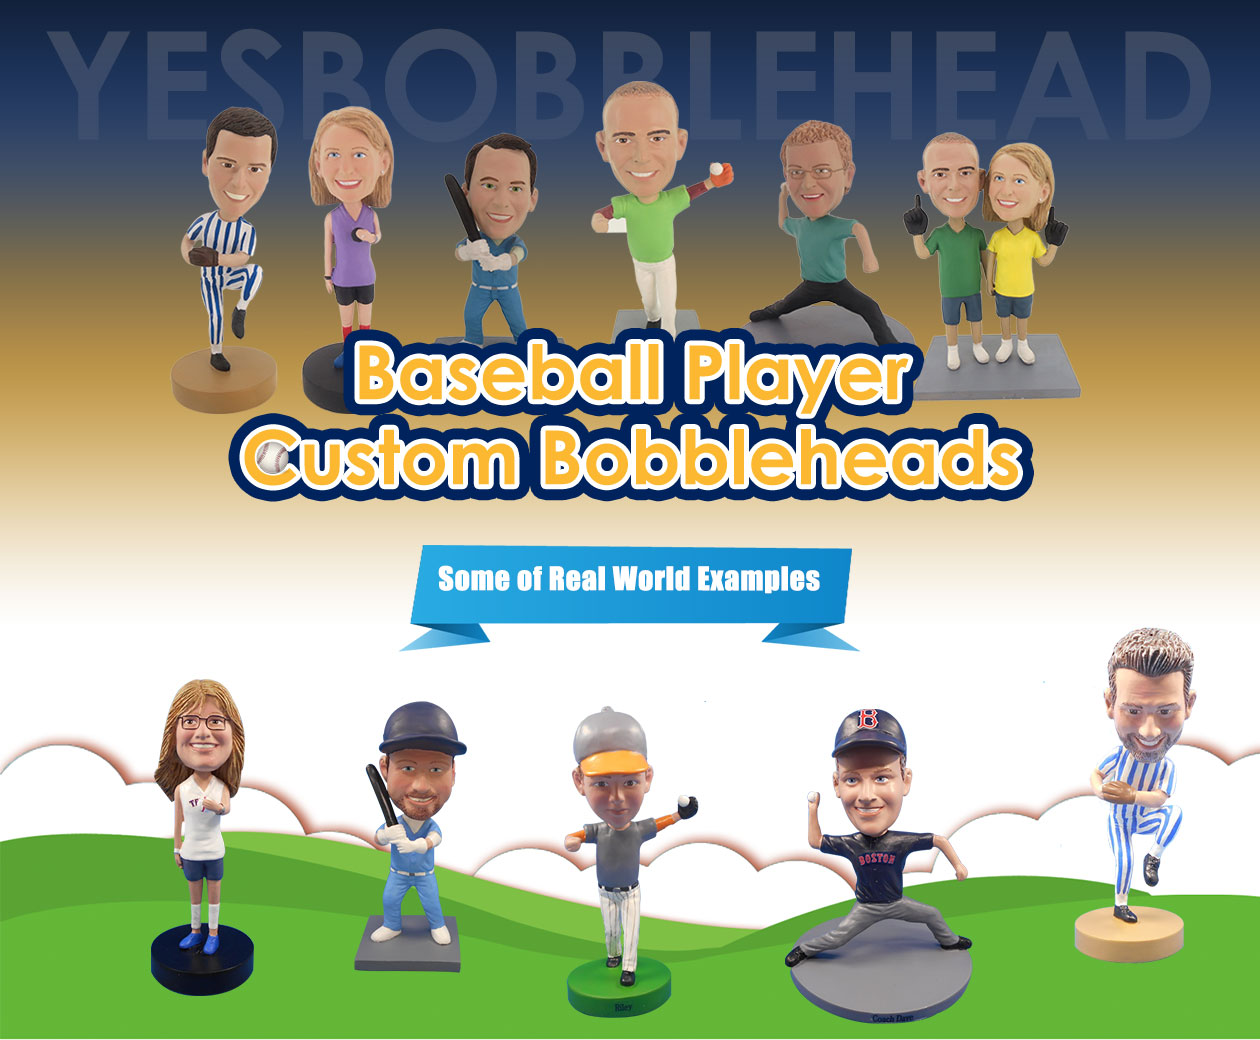 Baseball Player Custom Bobbleheads